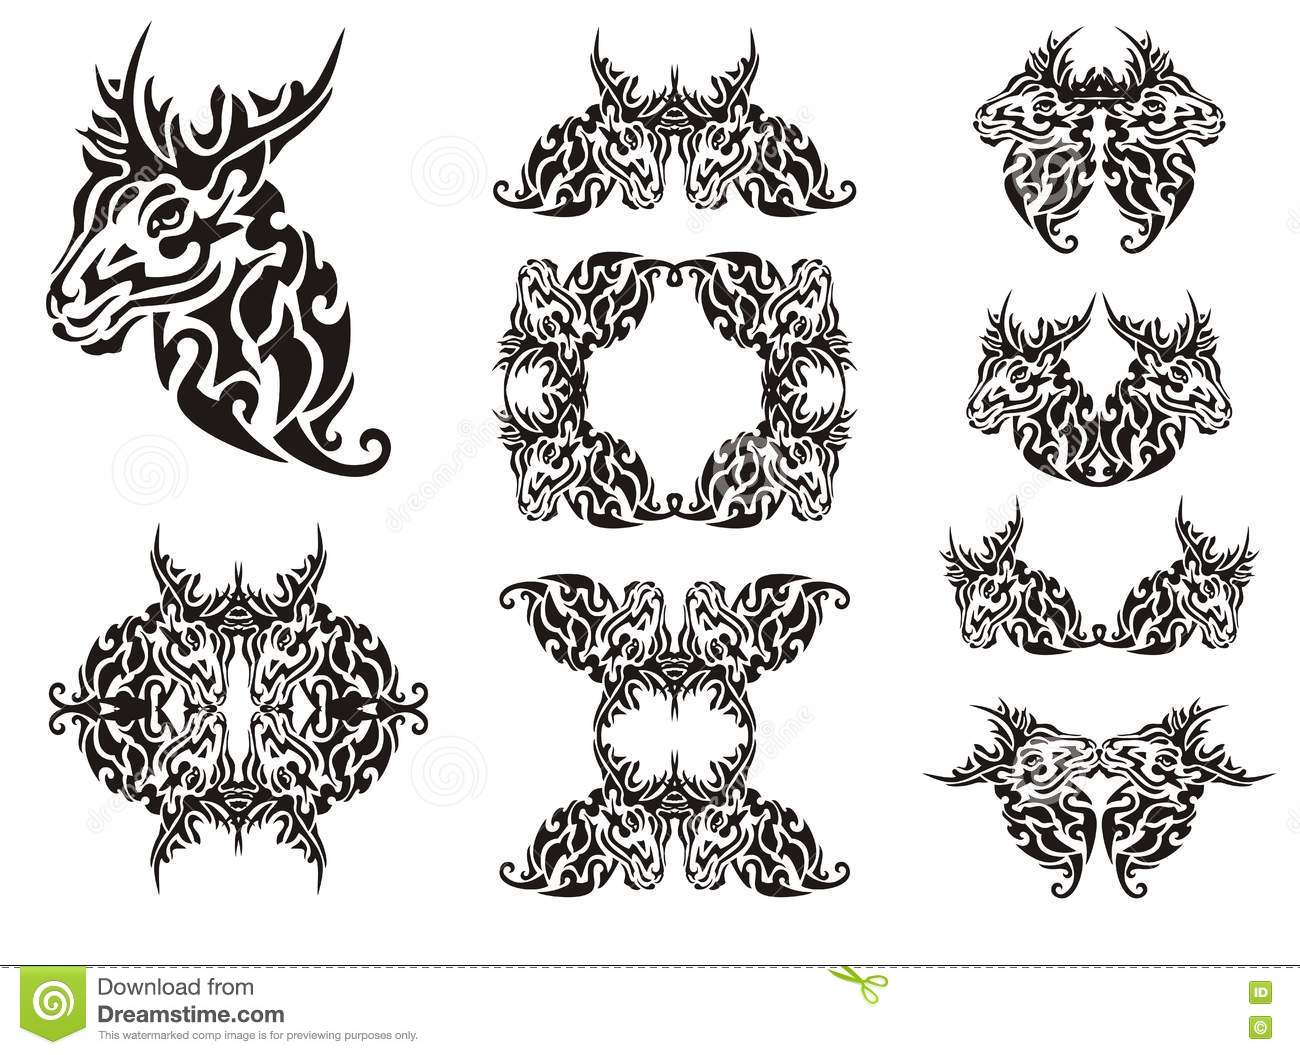 Tribal deer symbols stock vector. Illustration of energy - 73057705